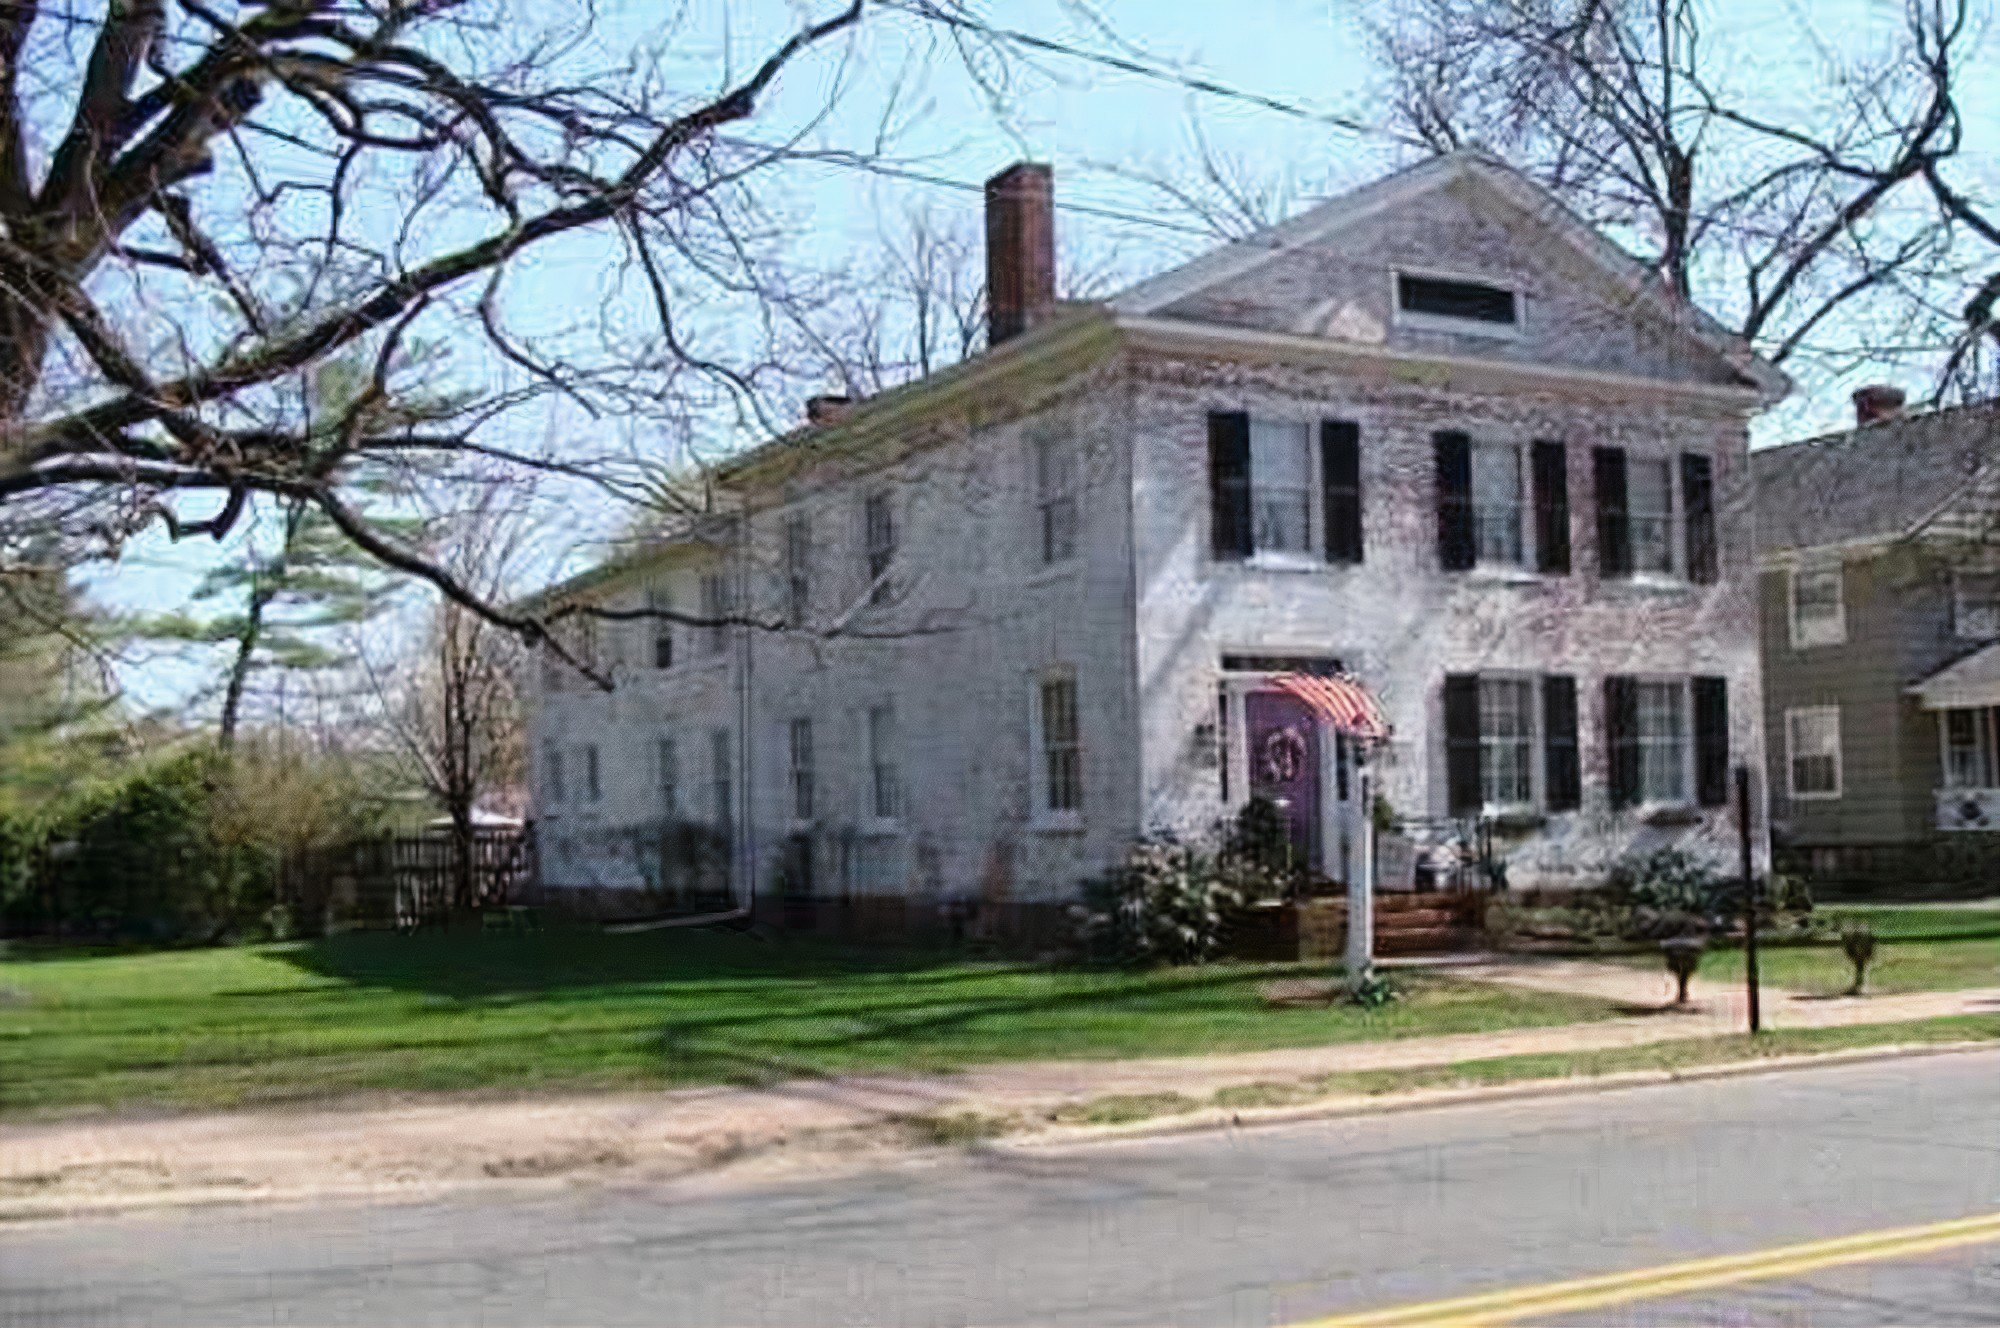 A large brick building with grass in front of a house at Chez Lafayette Bed & Breakfast.